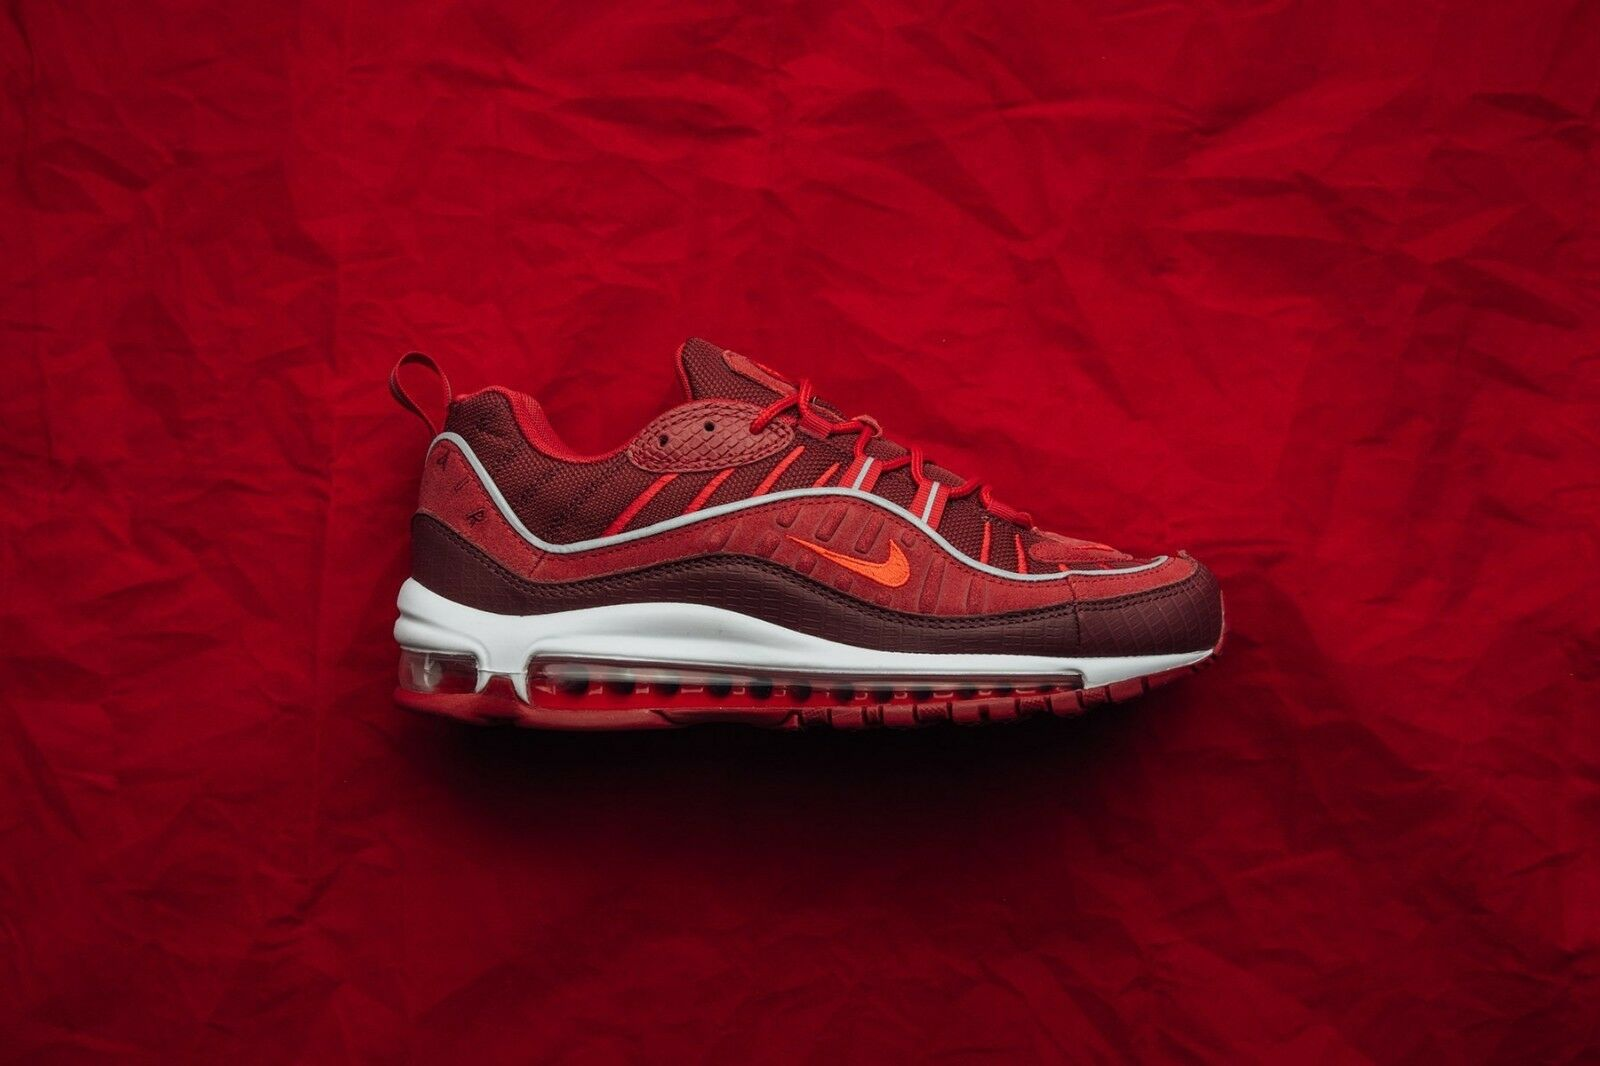 Nike Air Max 98 SE size 12. Team Gym Red. Triple Red. AO9380-600. 95 97